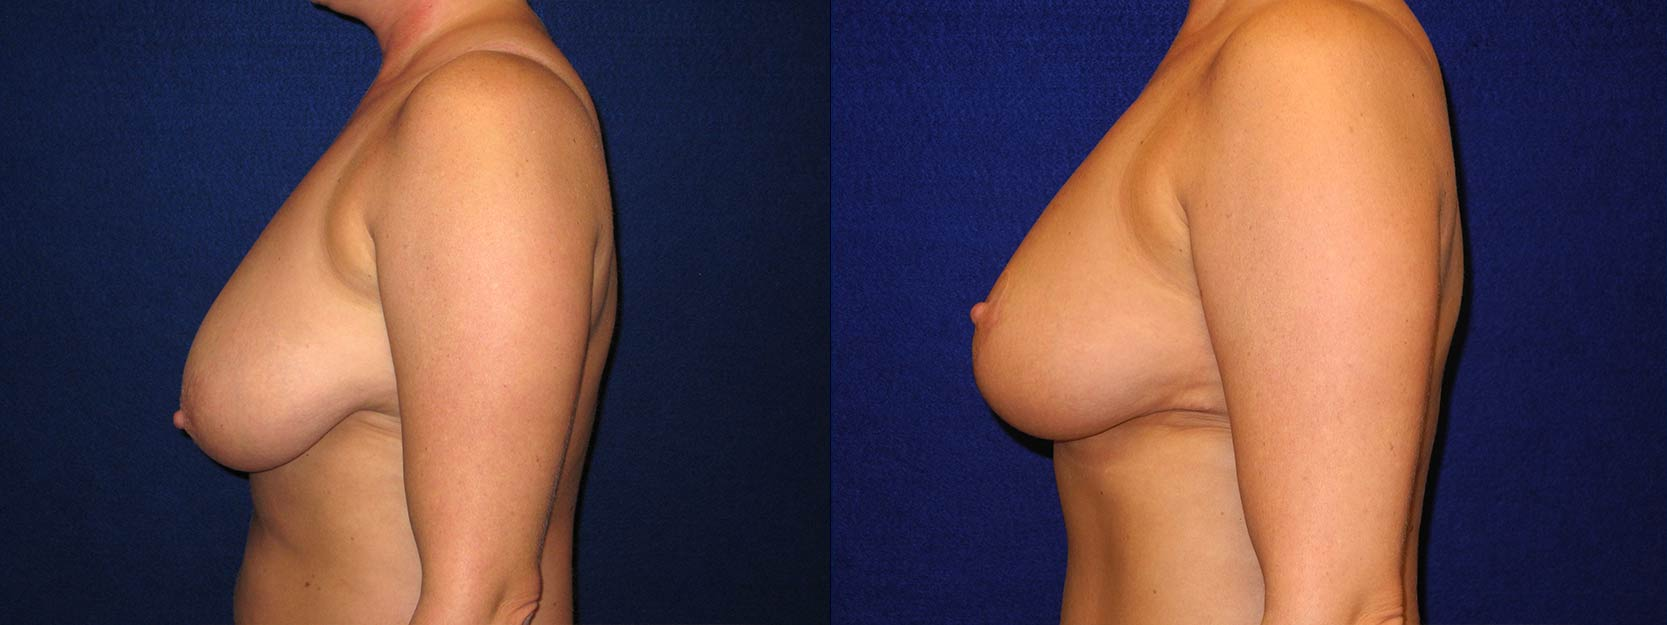 Left Profile View - Breast Reduction After Pregnancy